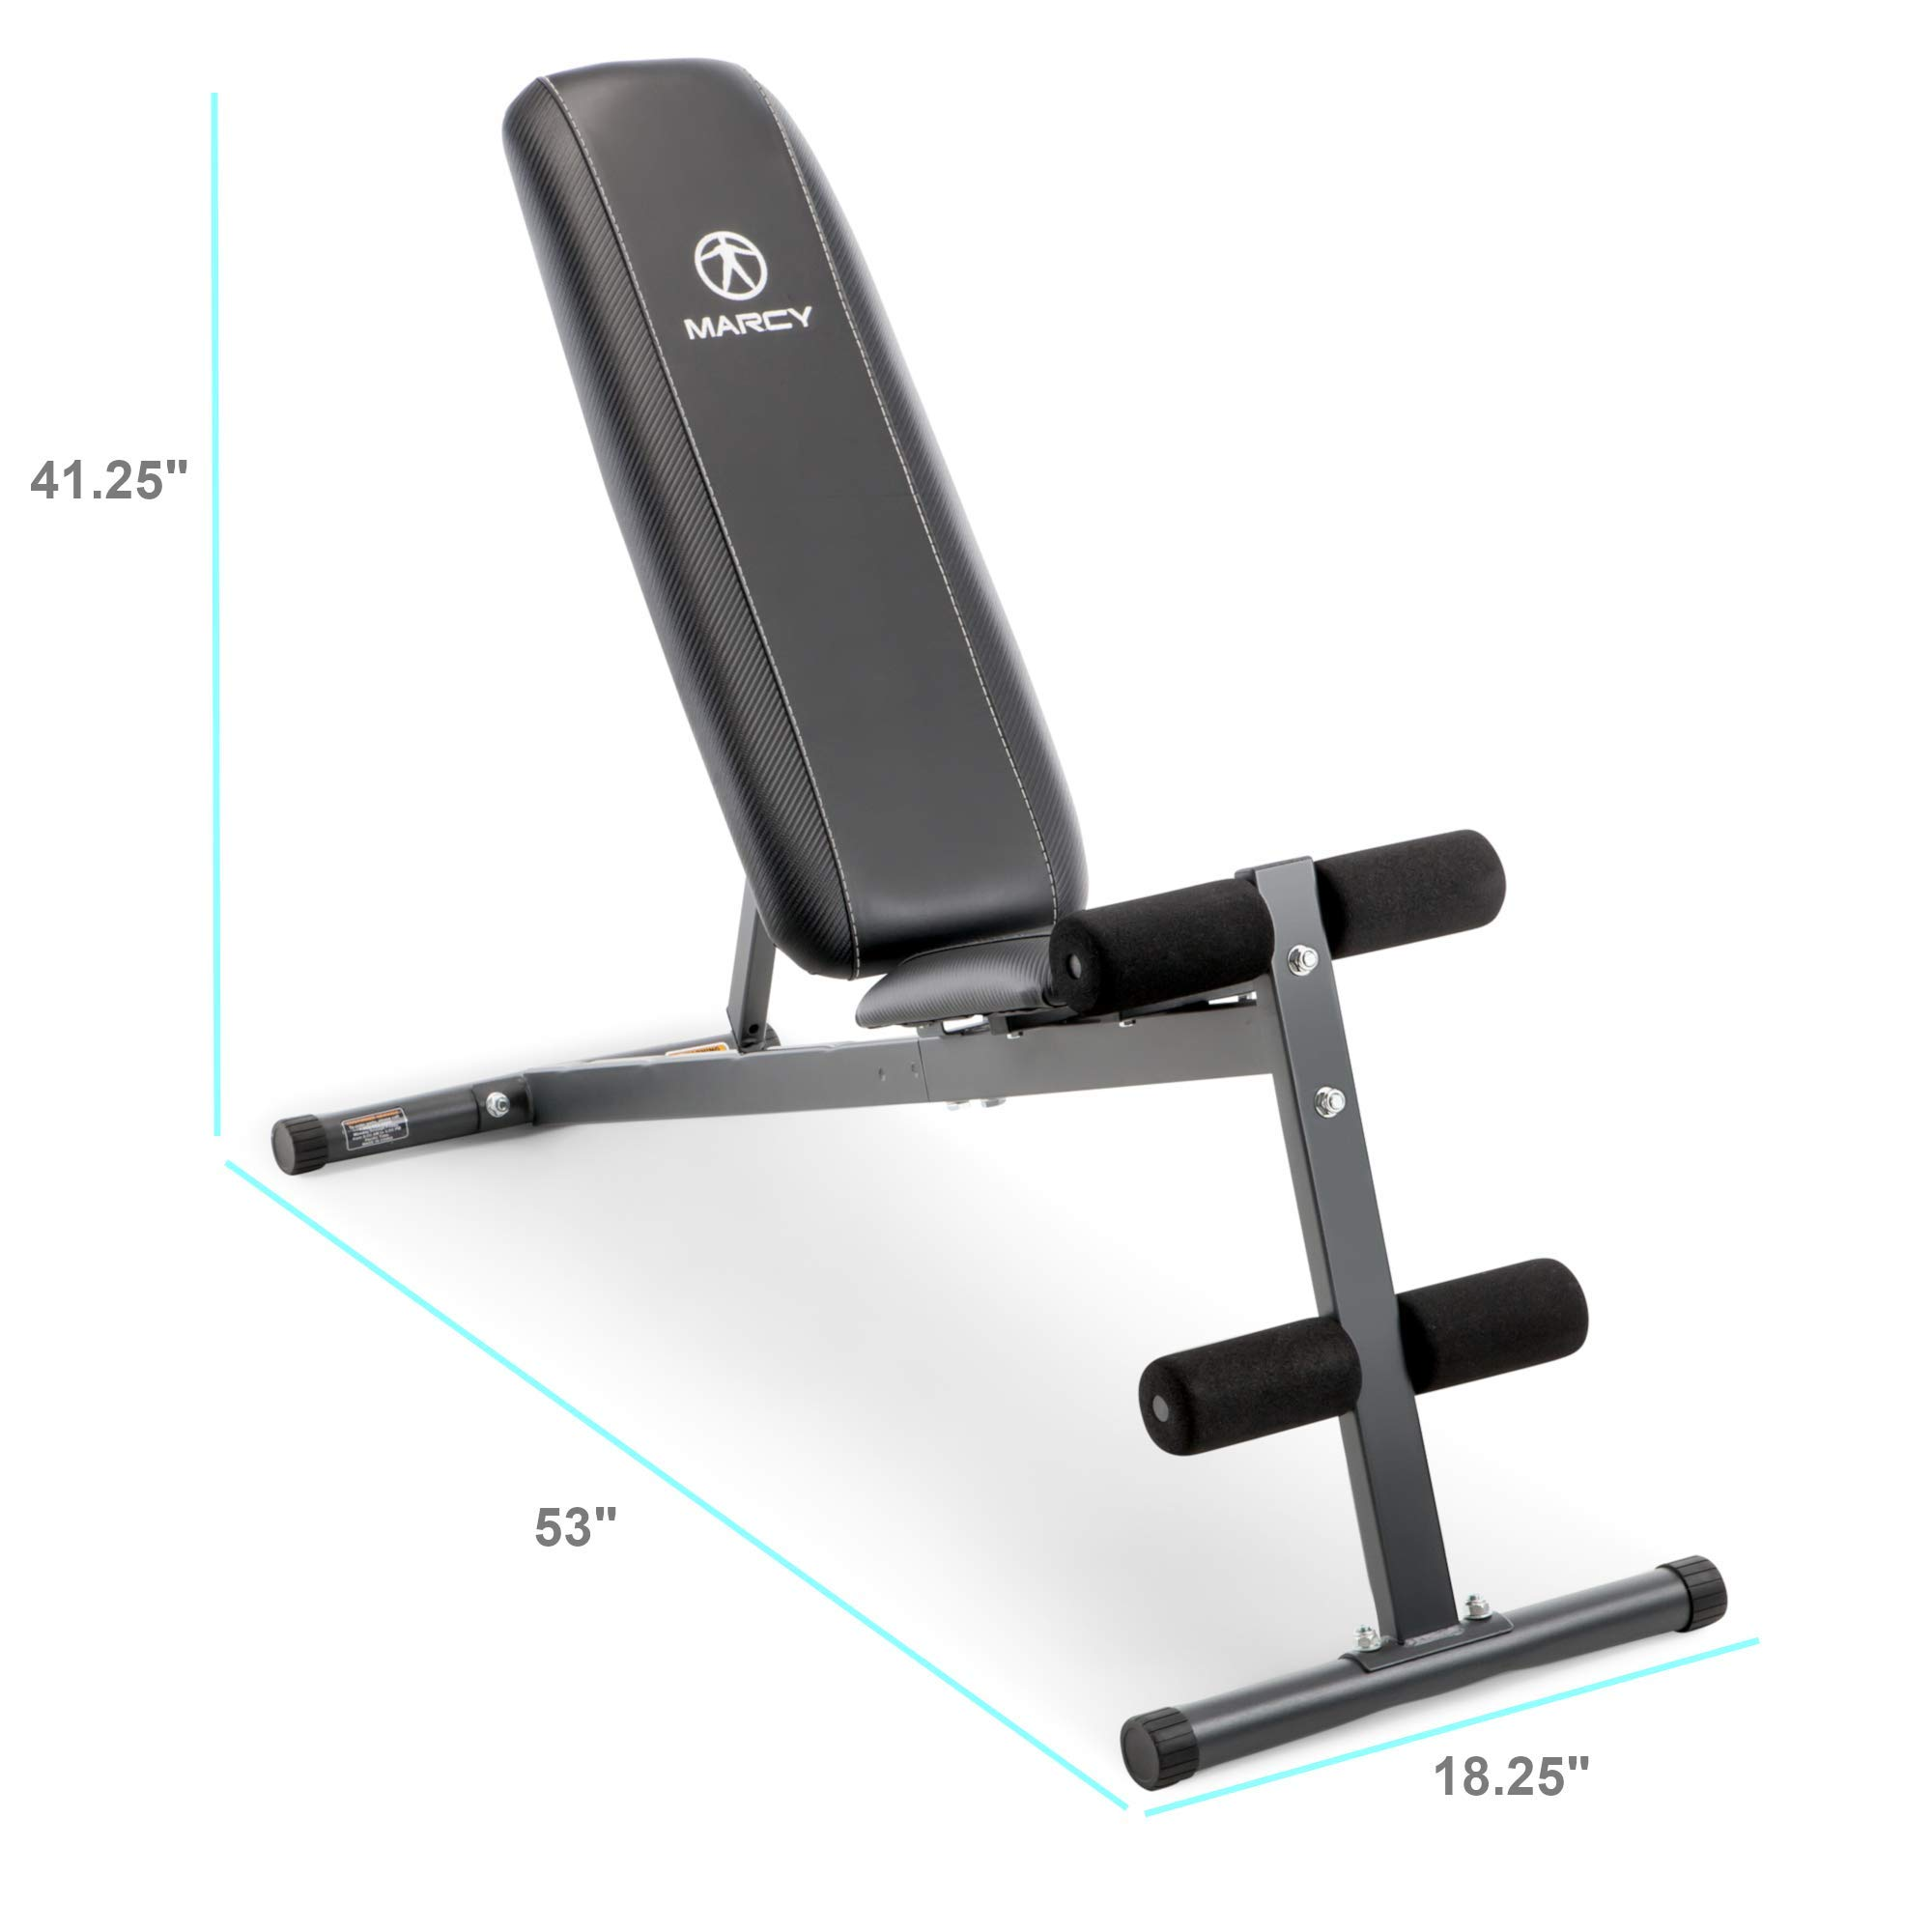 Marcy Exercise Utility Bench for Upright, Incline, Decline, and Flat Exercise SB-261W (Renewed) by Marcy